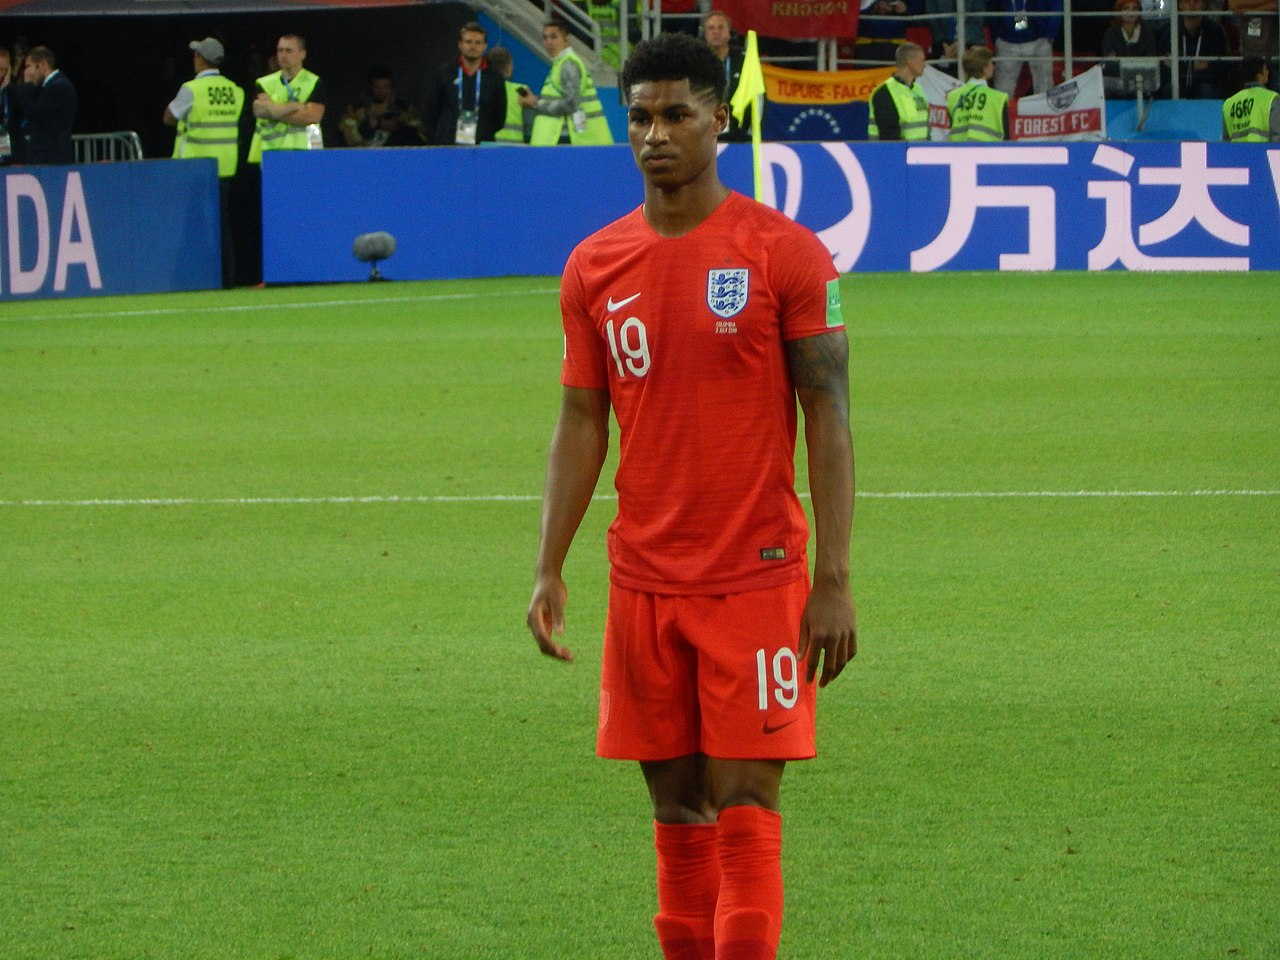 Marcus Rashford takes United Kingdom child poverty policy into his own hands